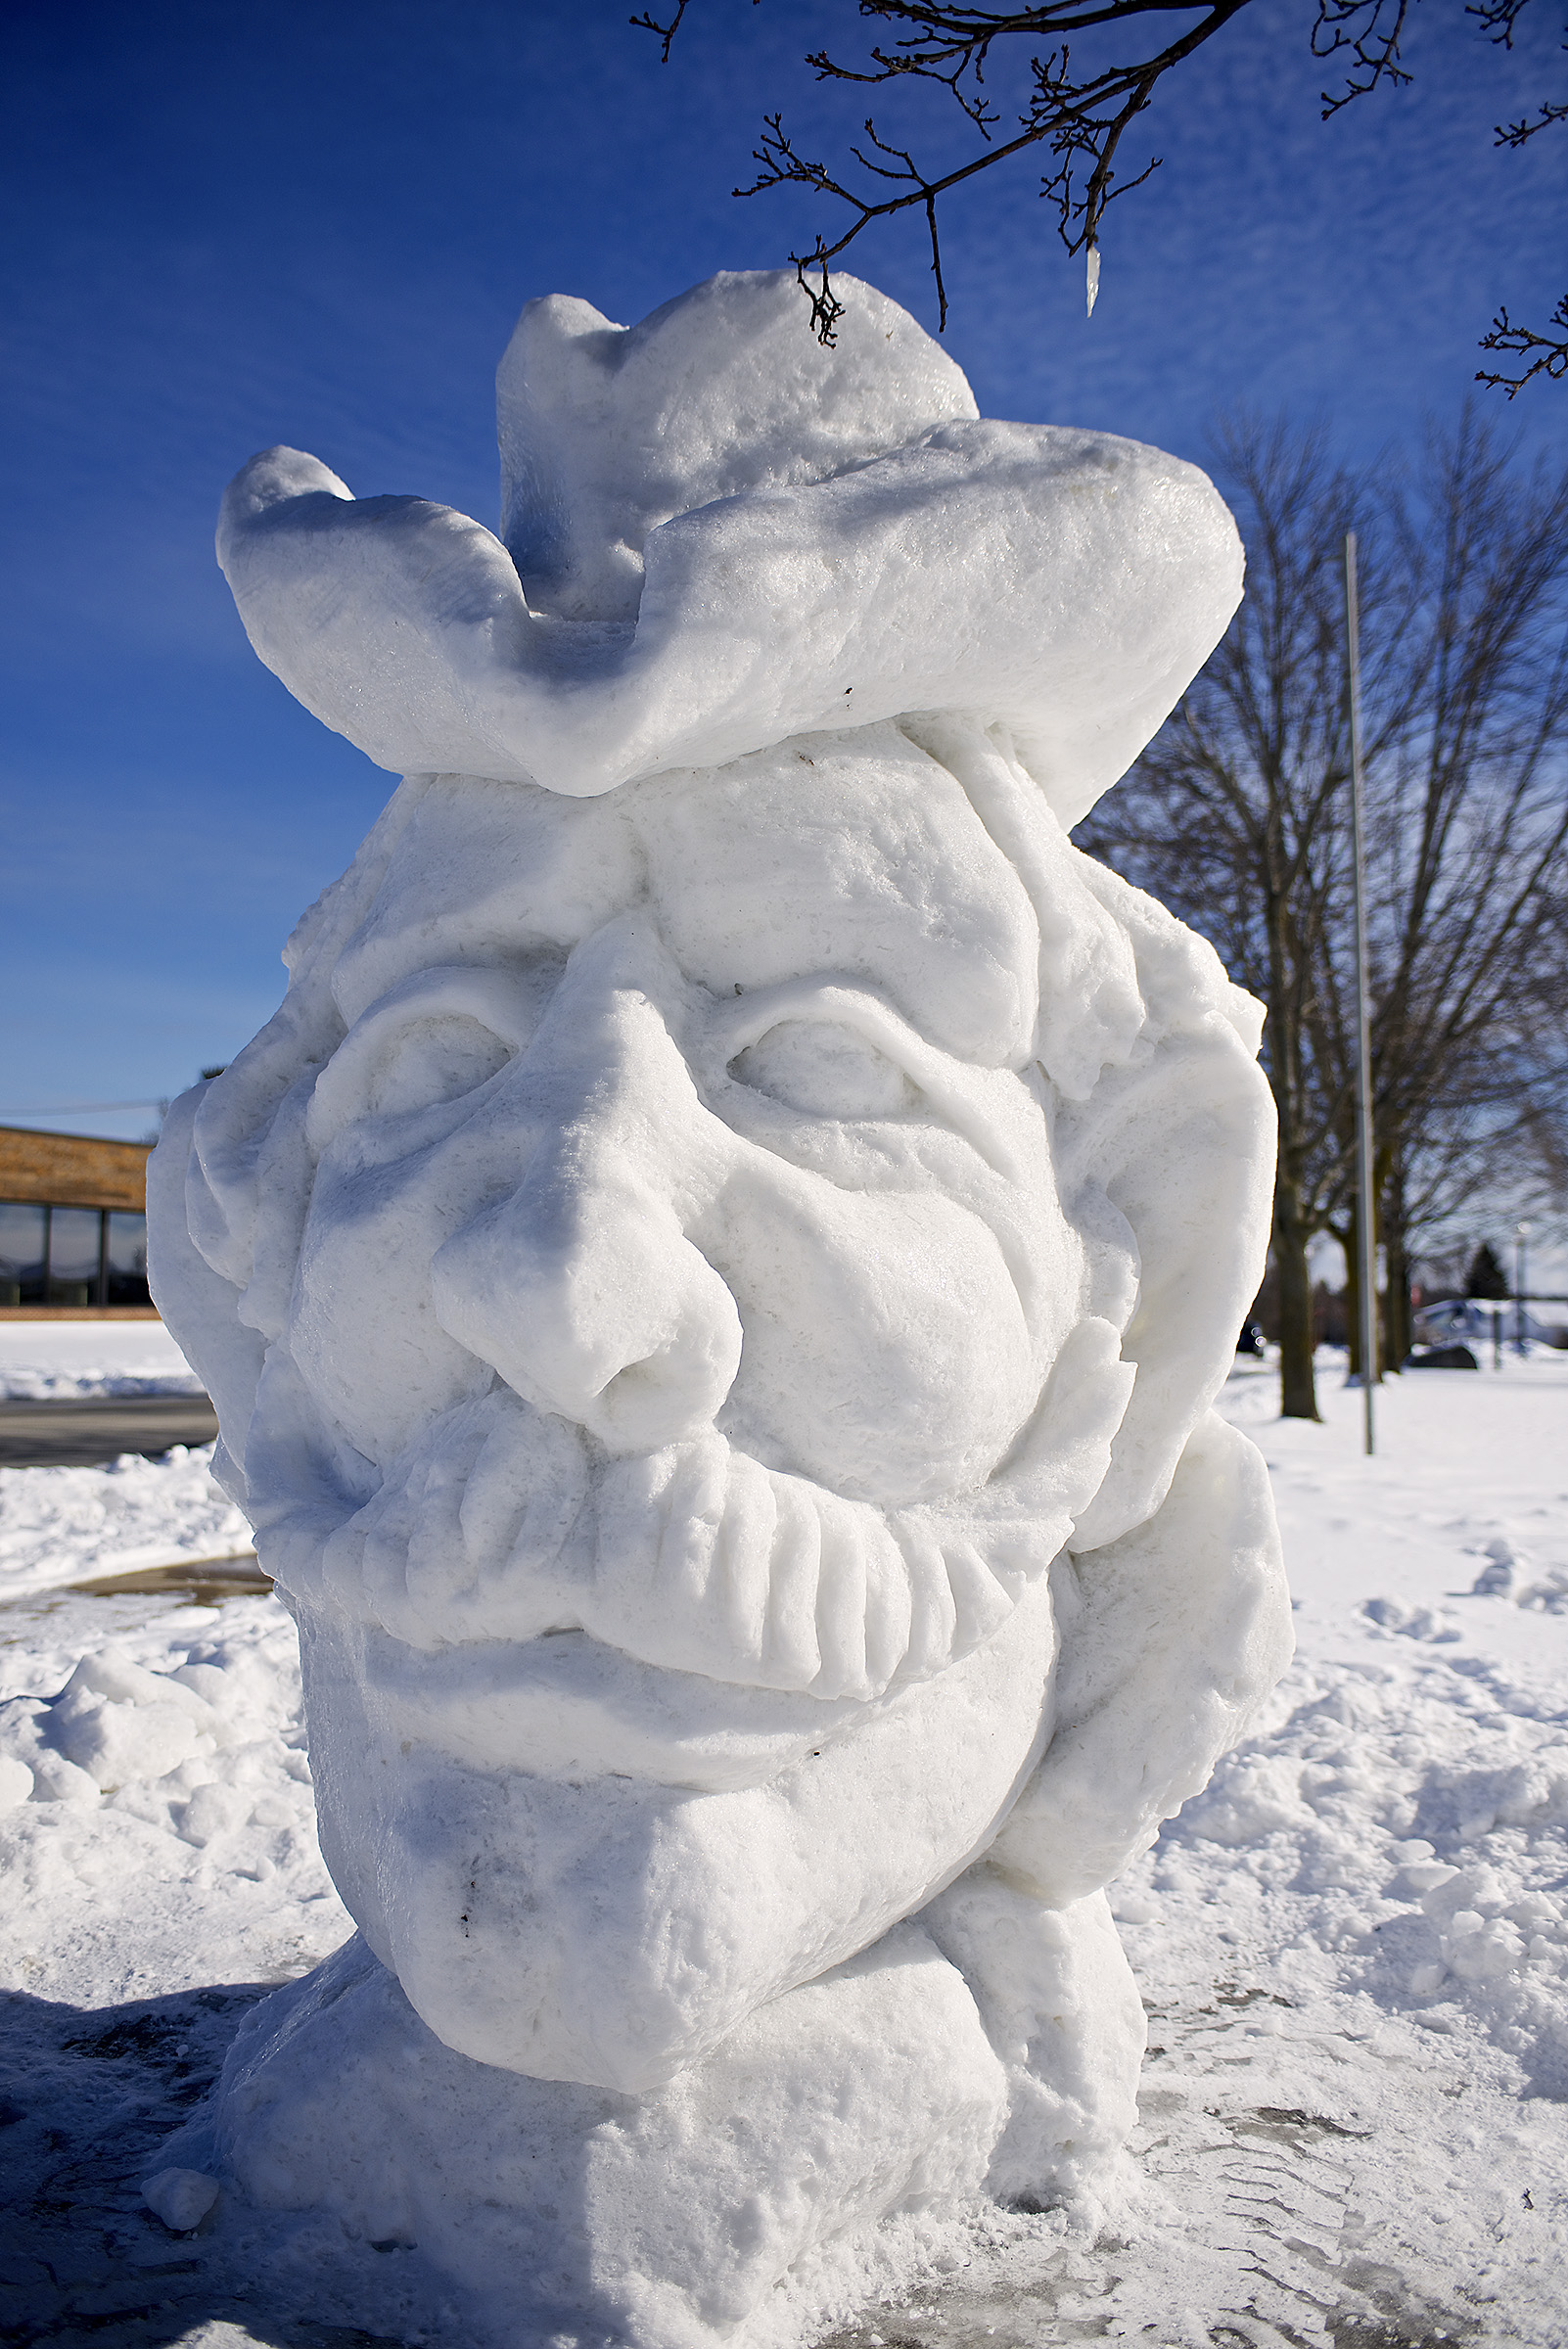 door county events calendar door county pulse witness novice intermediate advanced and professional carvers transform blocks of snow and ice into works